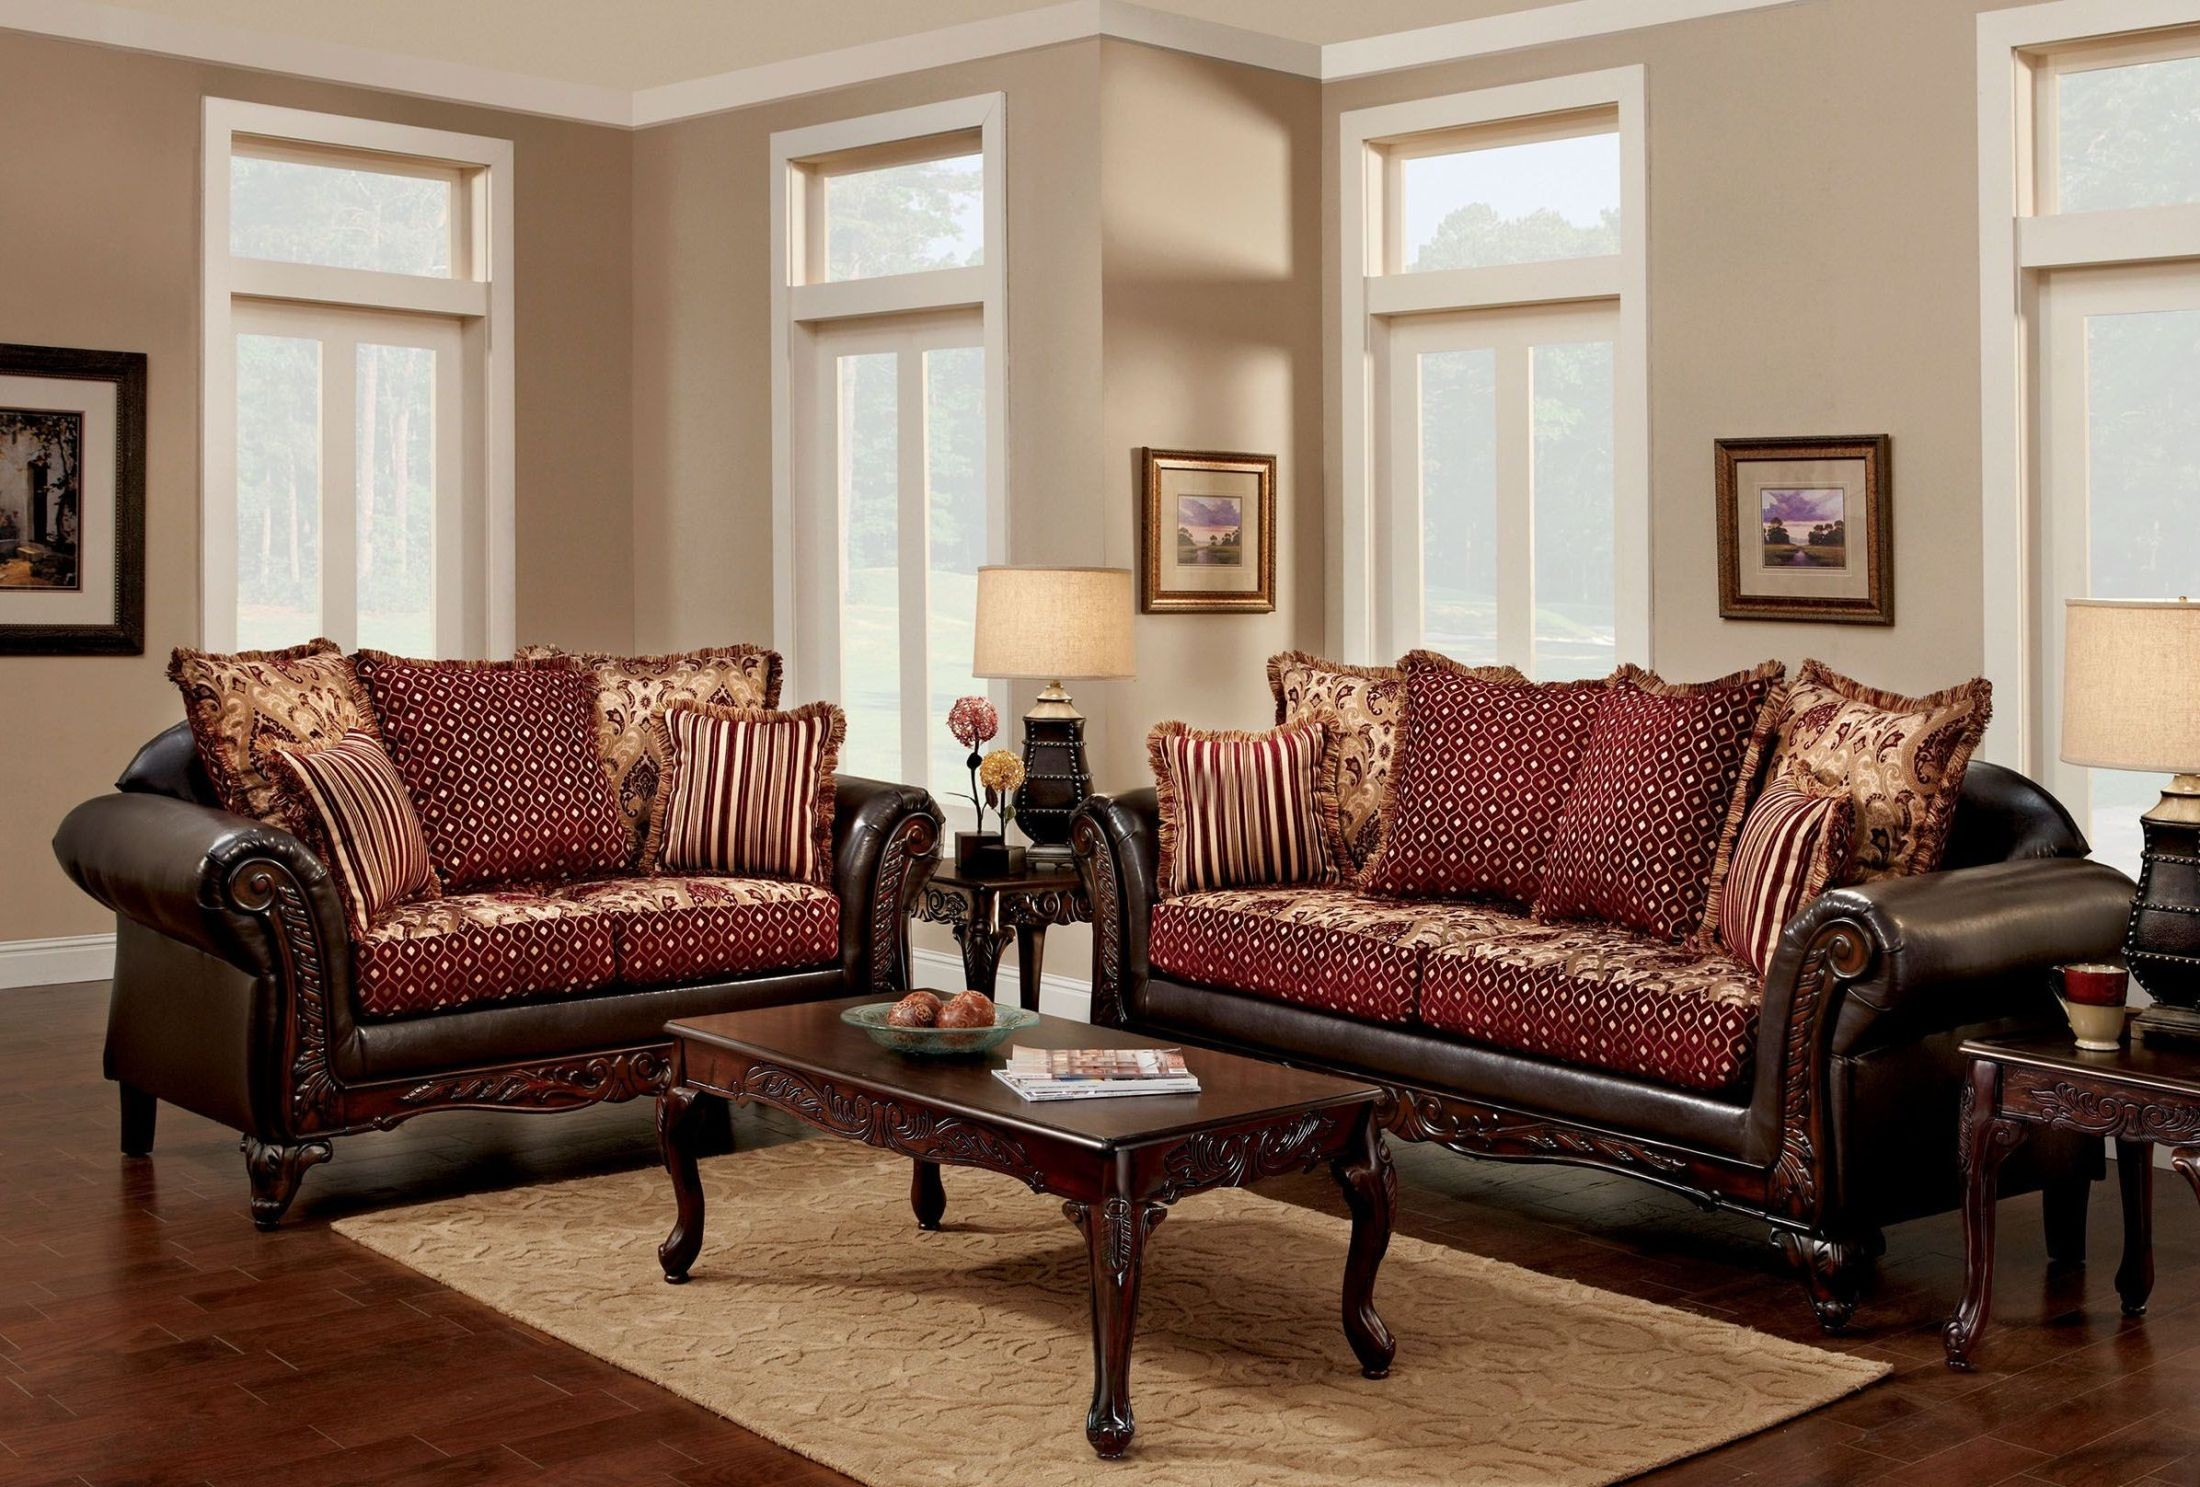 Furniture Of America Ellis Brown And Burgundy Living Room Set pertaining to Living Rooms Sets